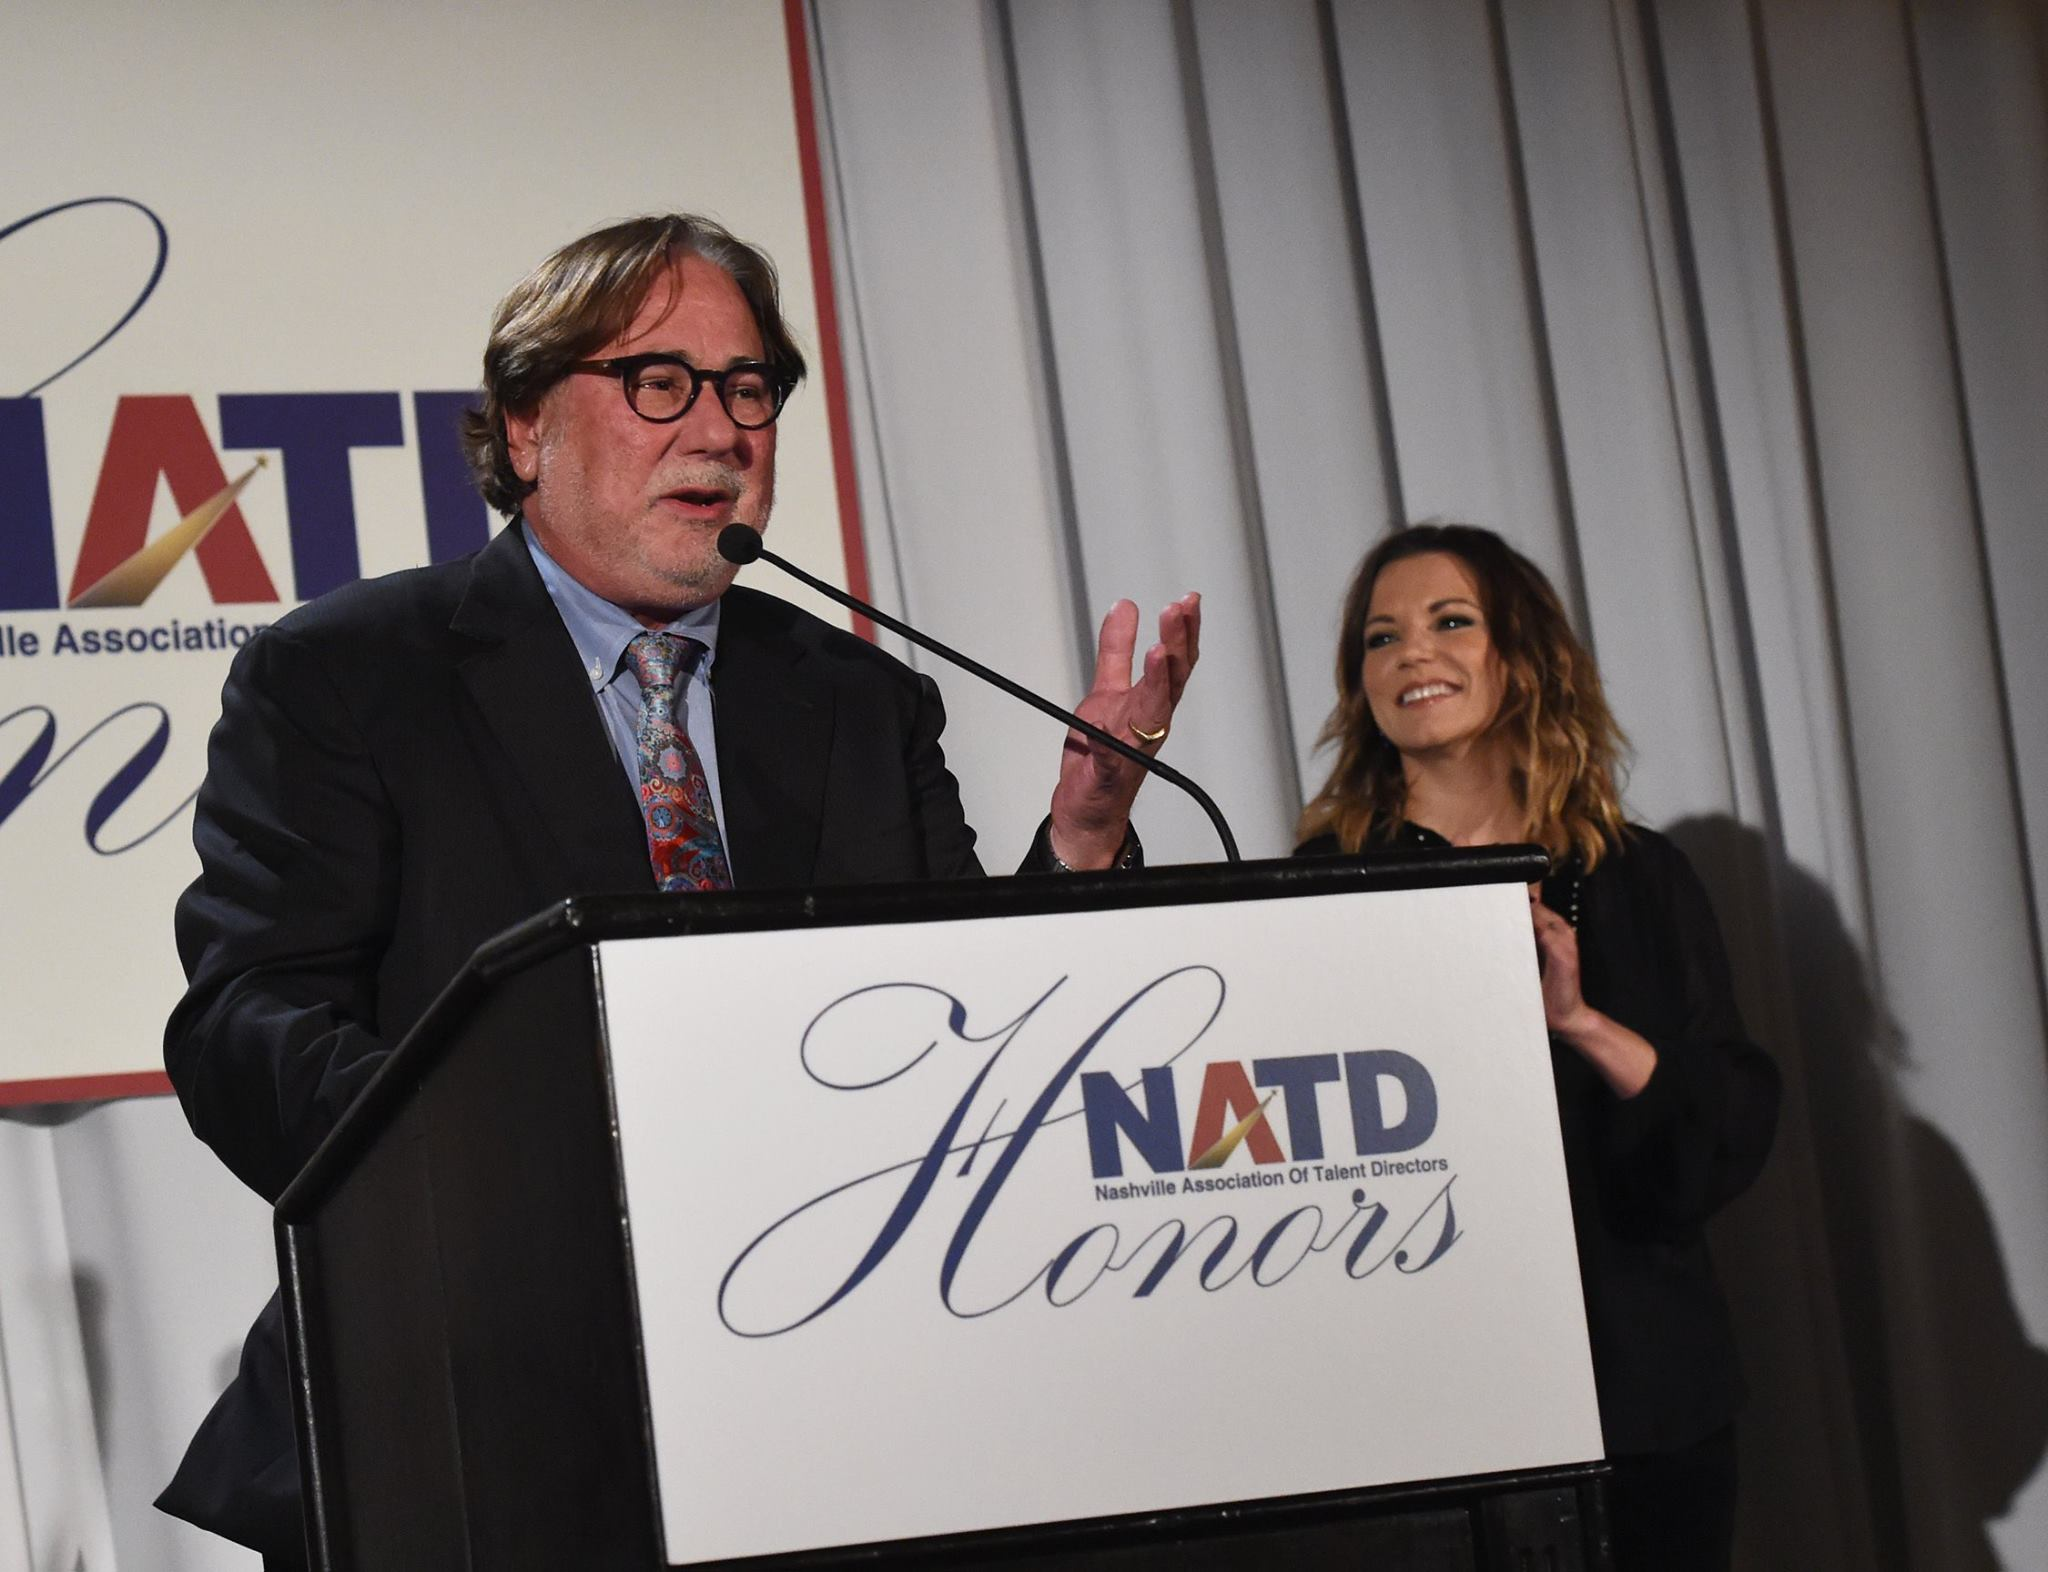 Honoree Rod Essig & Martina McBride